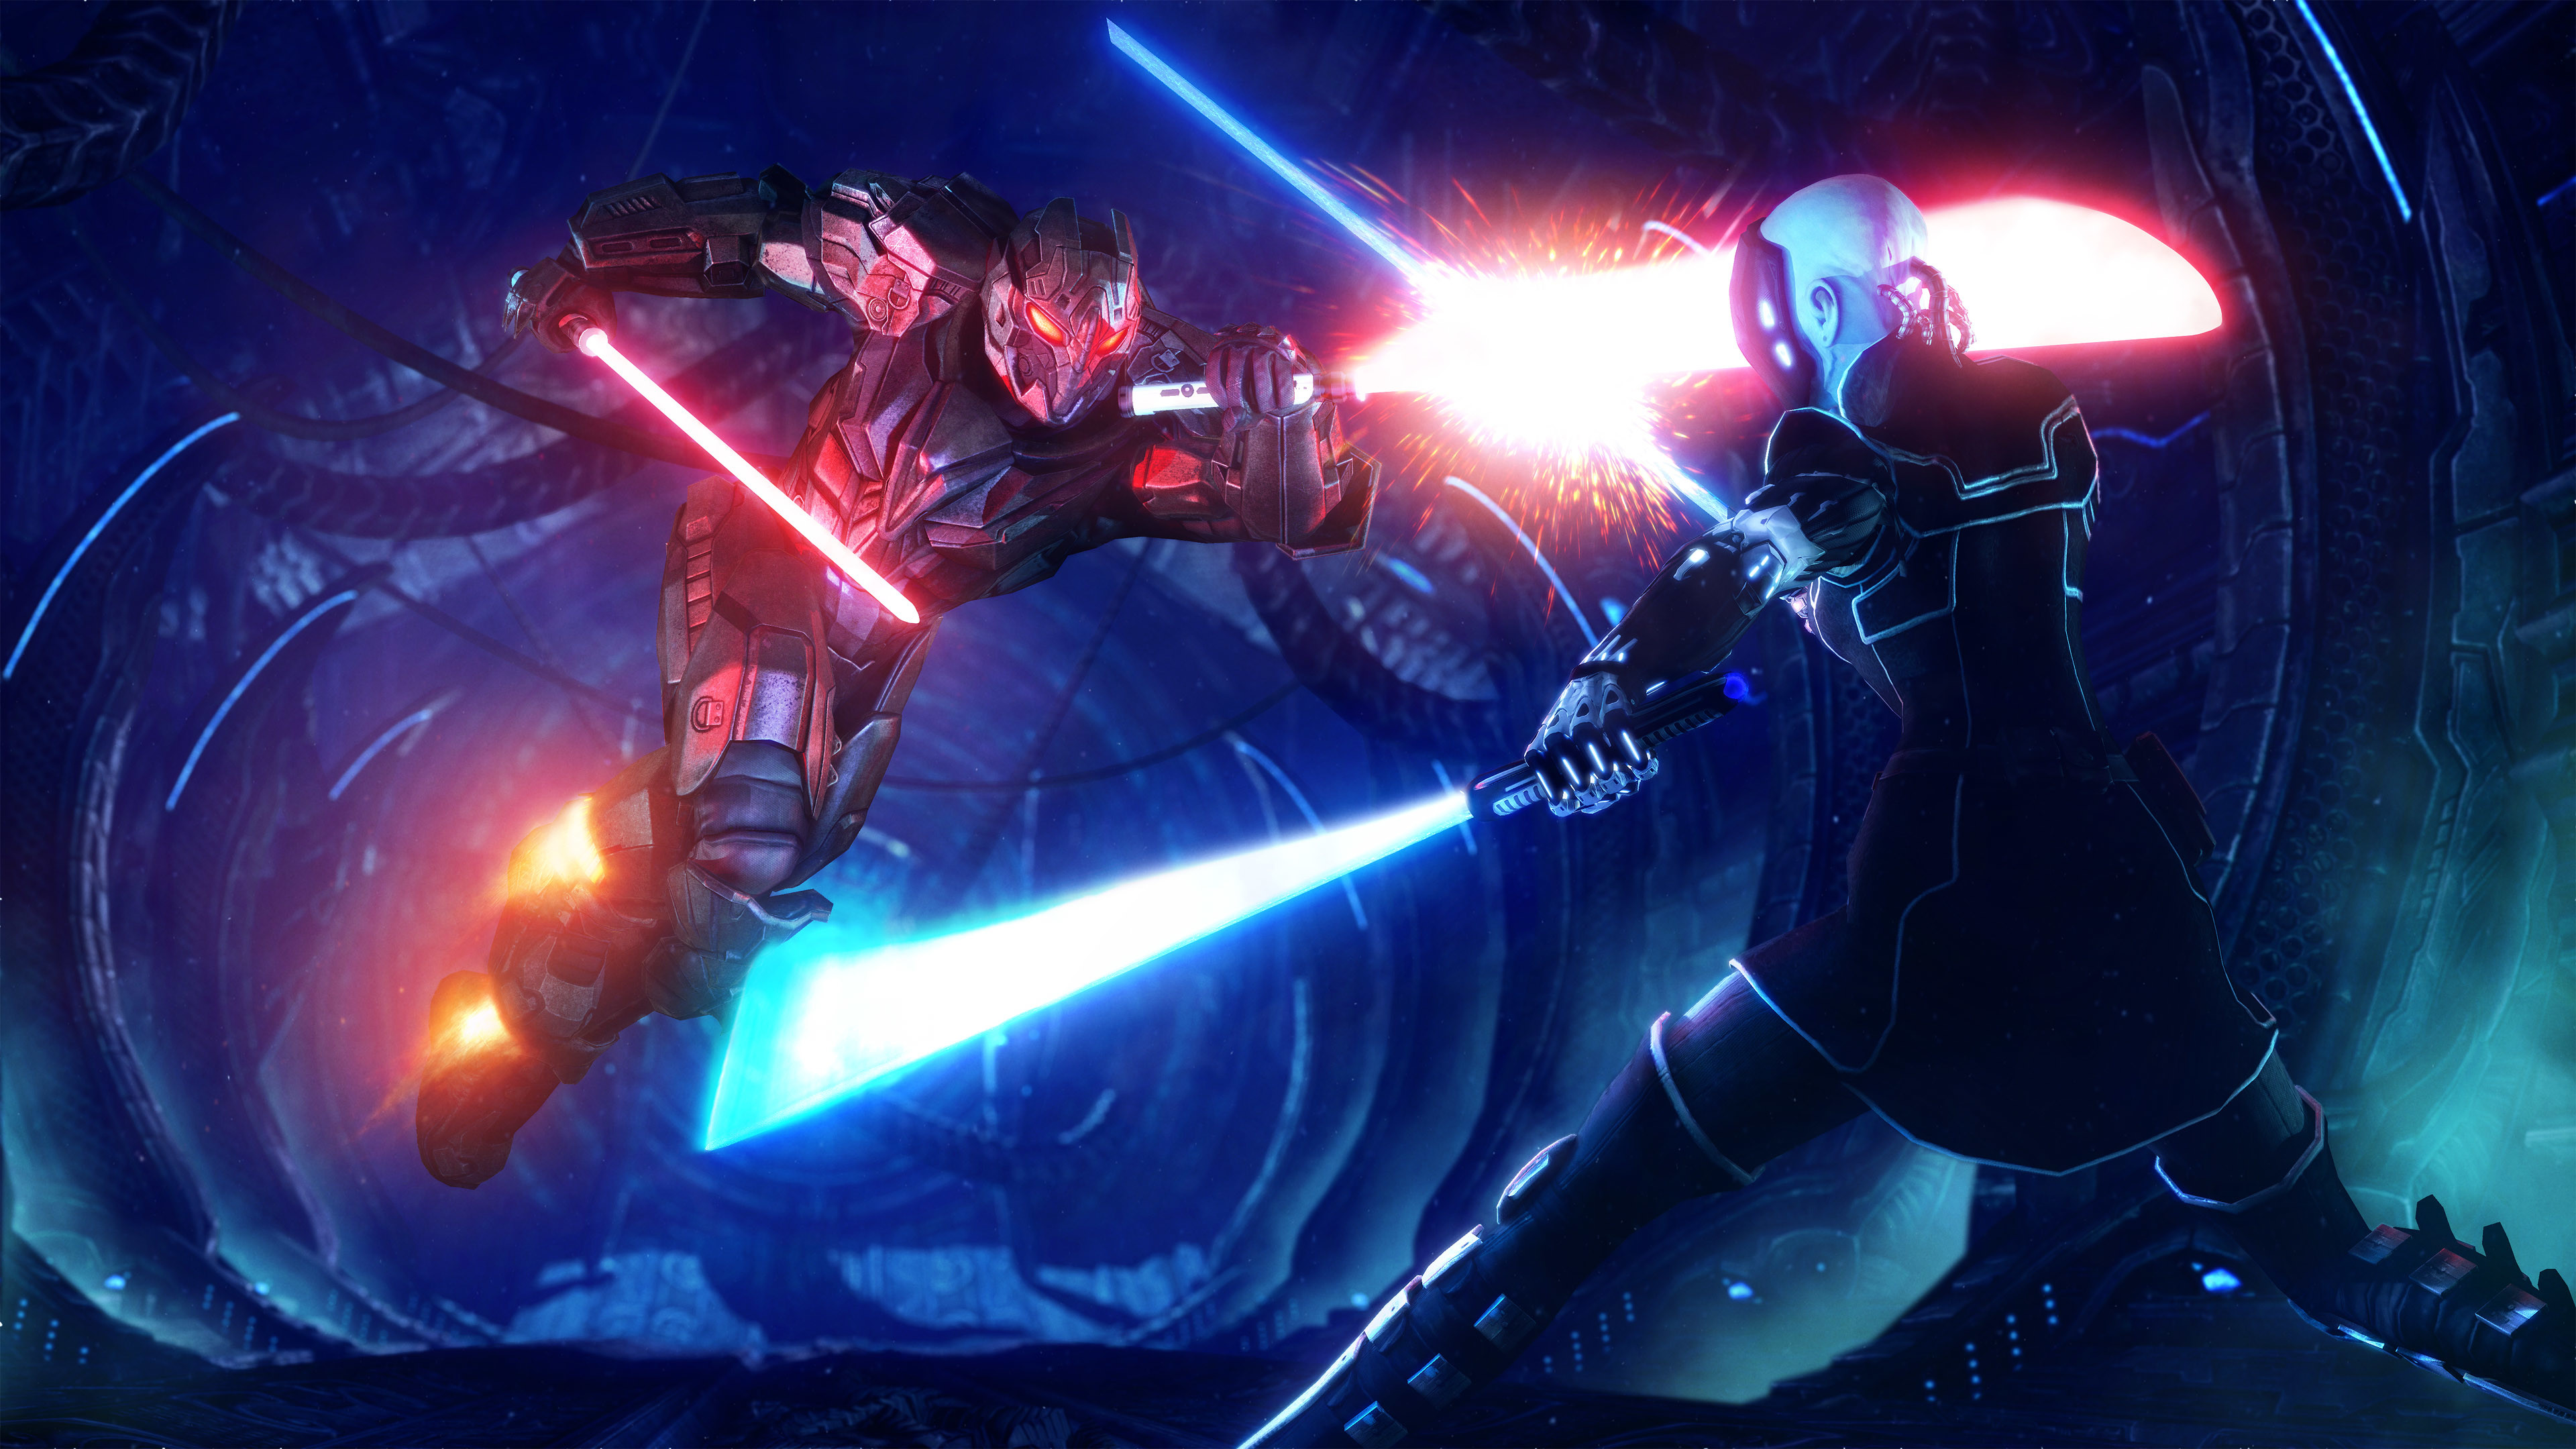 Sci Fi Star Wars Wallpaper Lightsaber Fight 3840x2160 Wallpaper Teahub Io